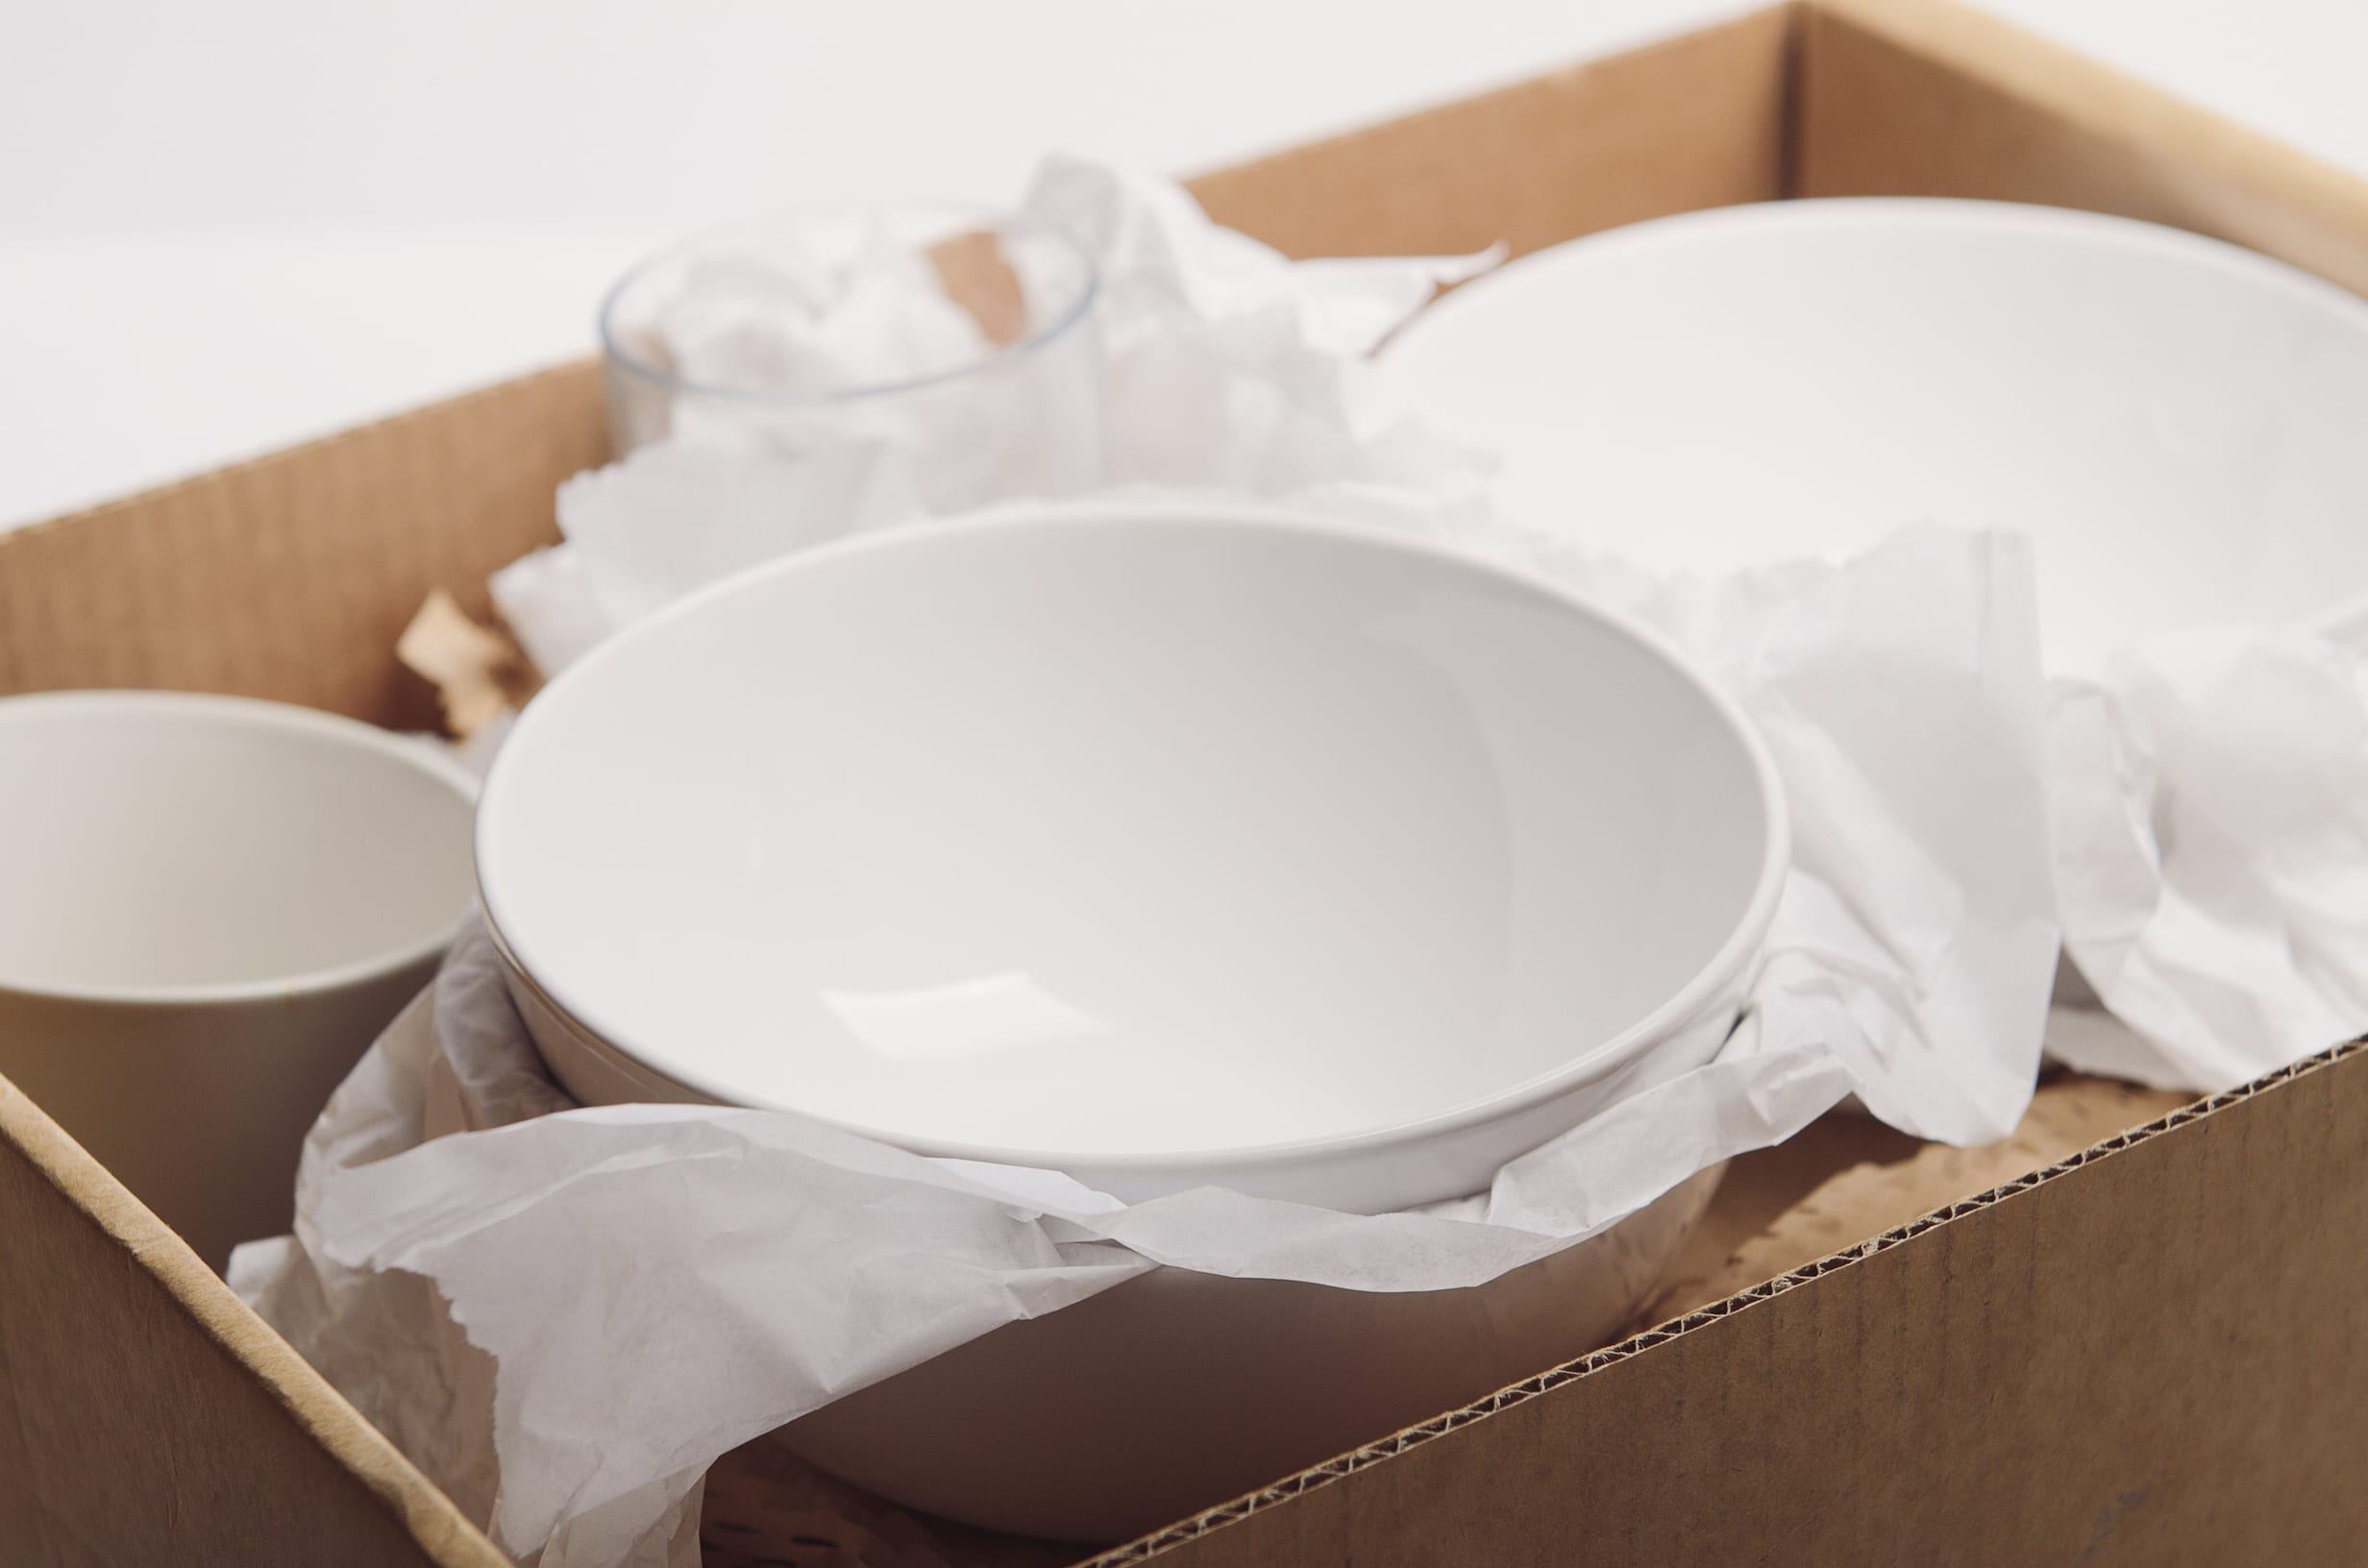 How to Easily Pack Dishes and Stop Breaking Plates